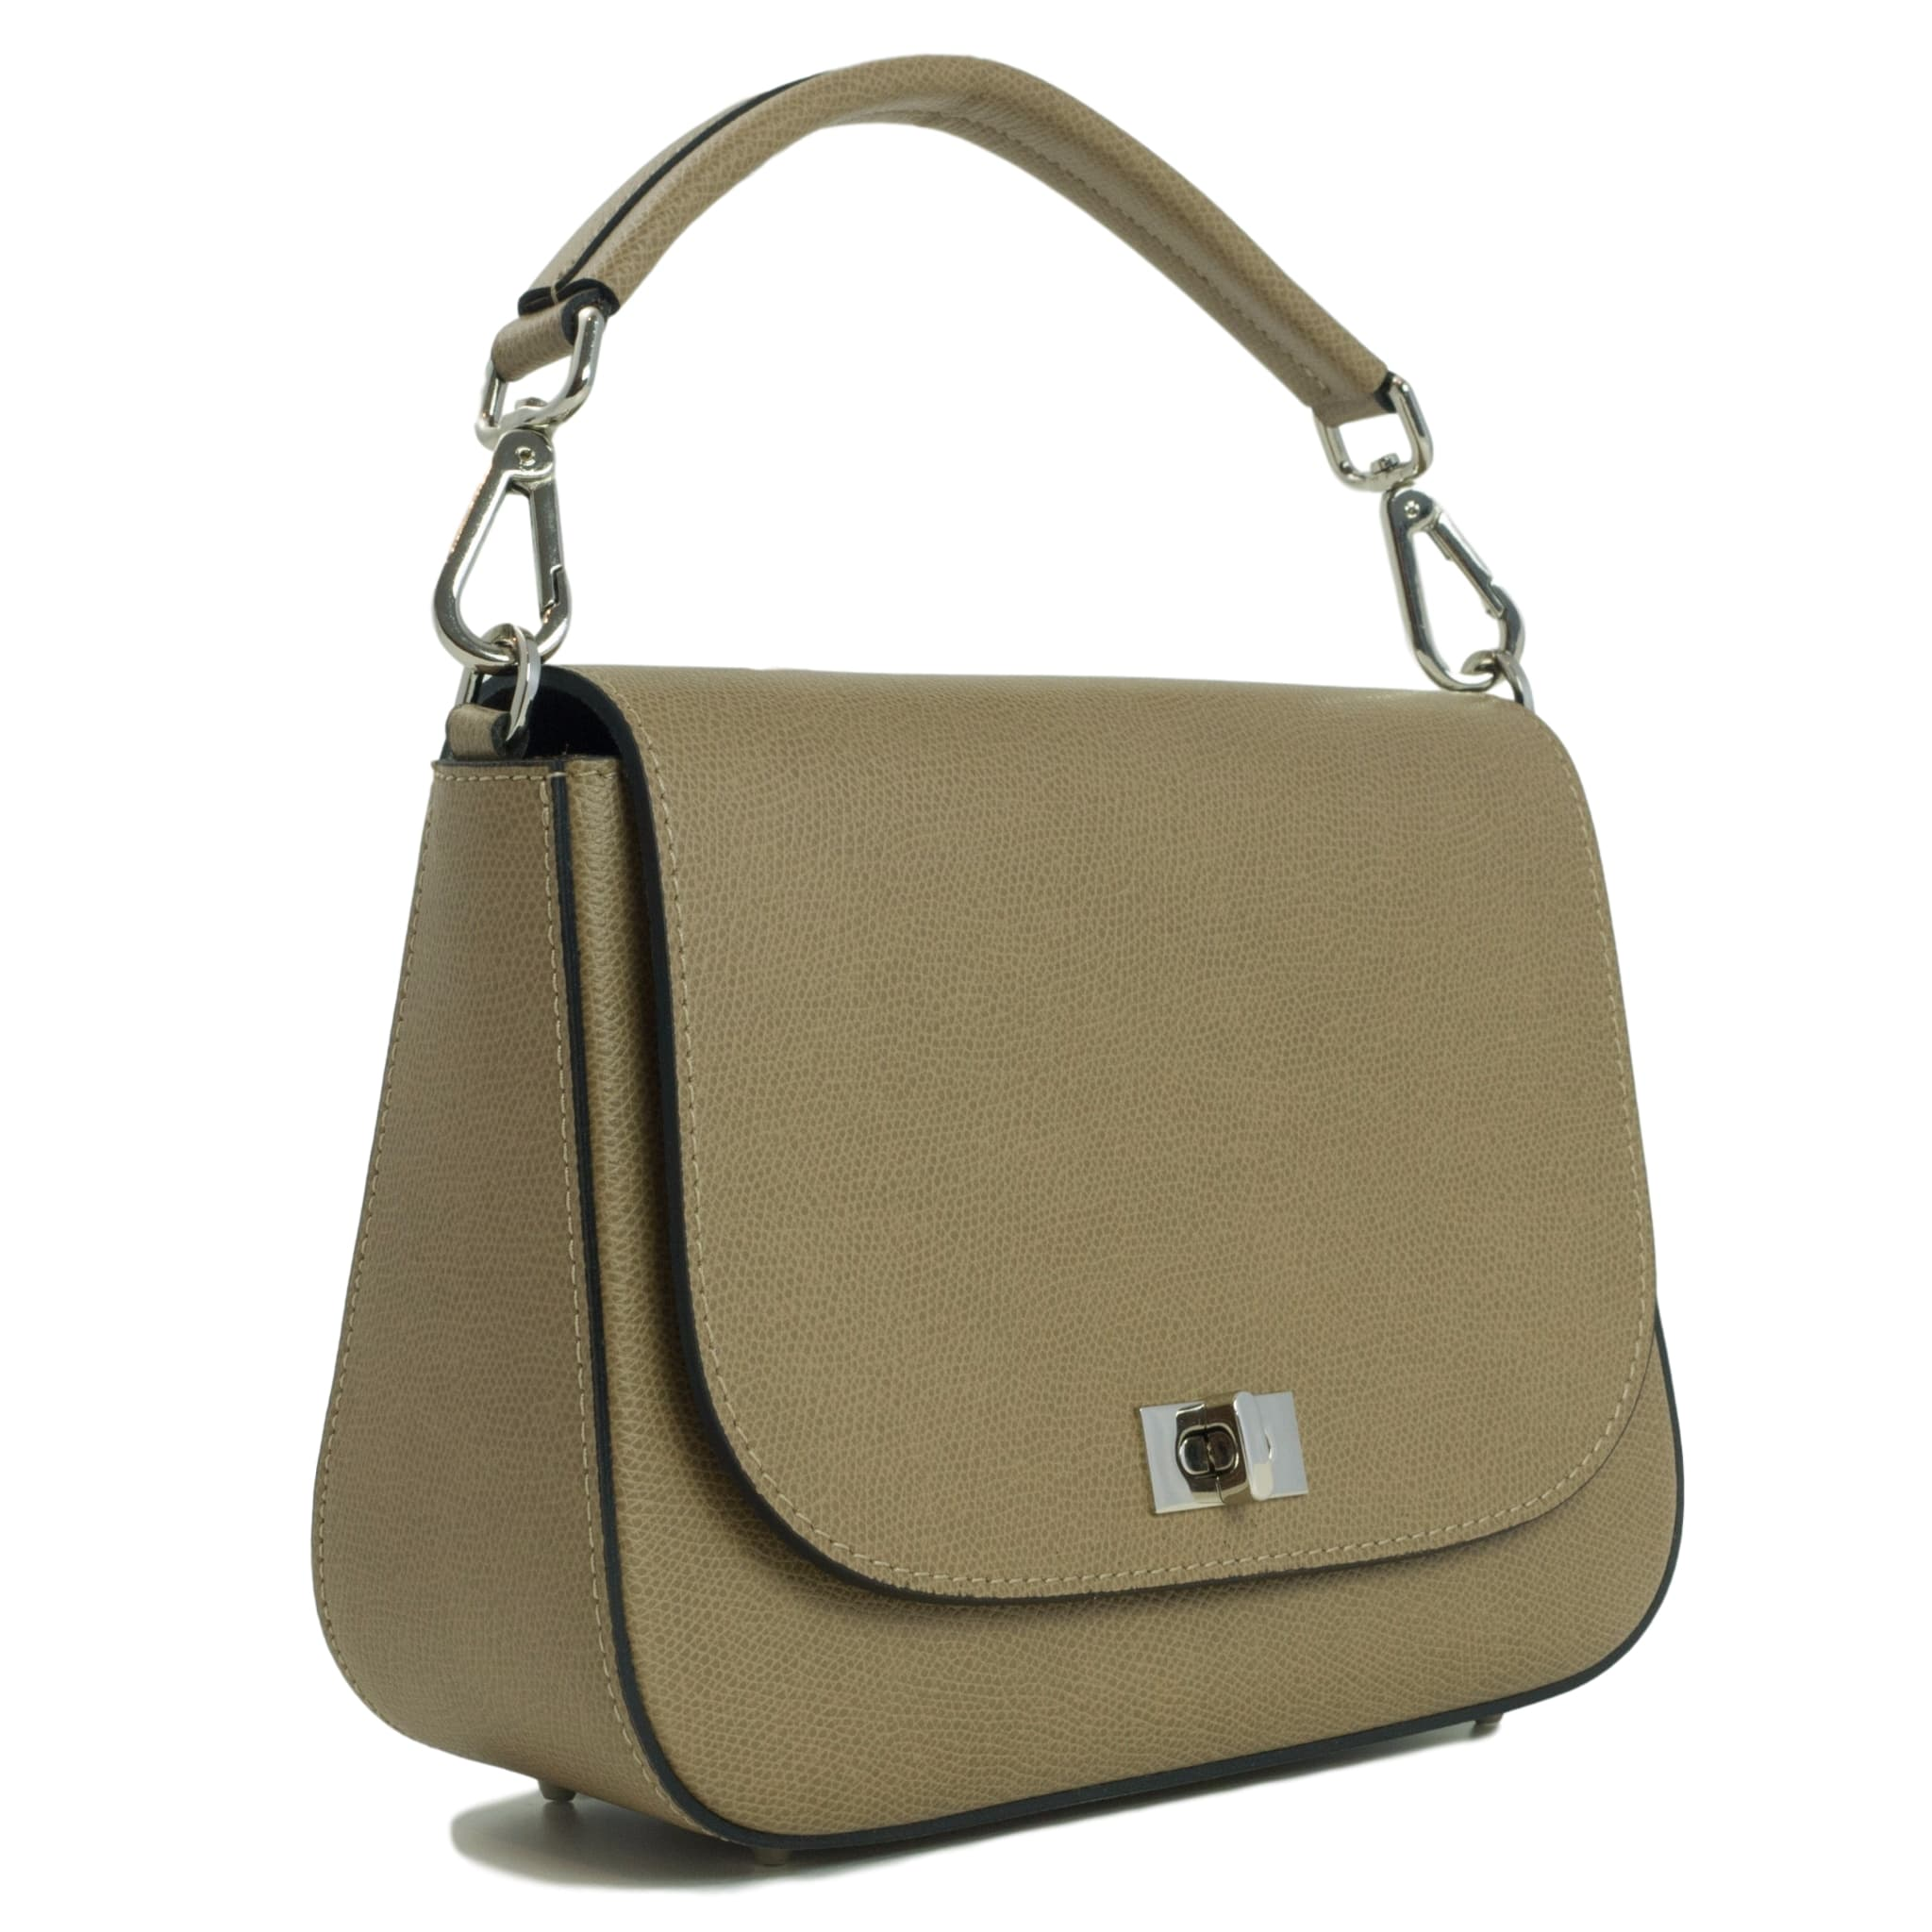 Beige saddle bag